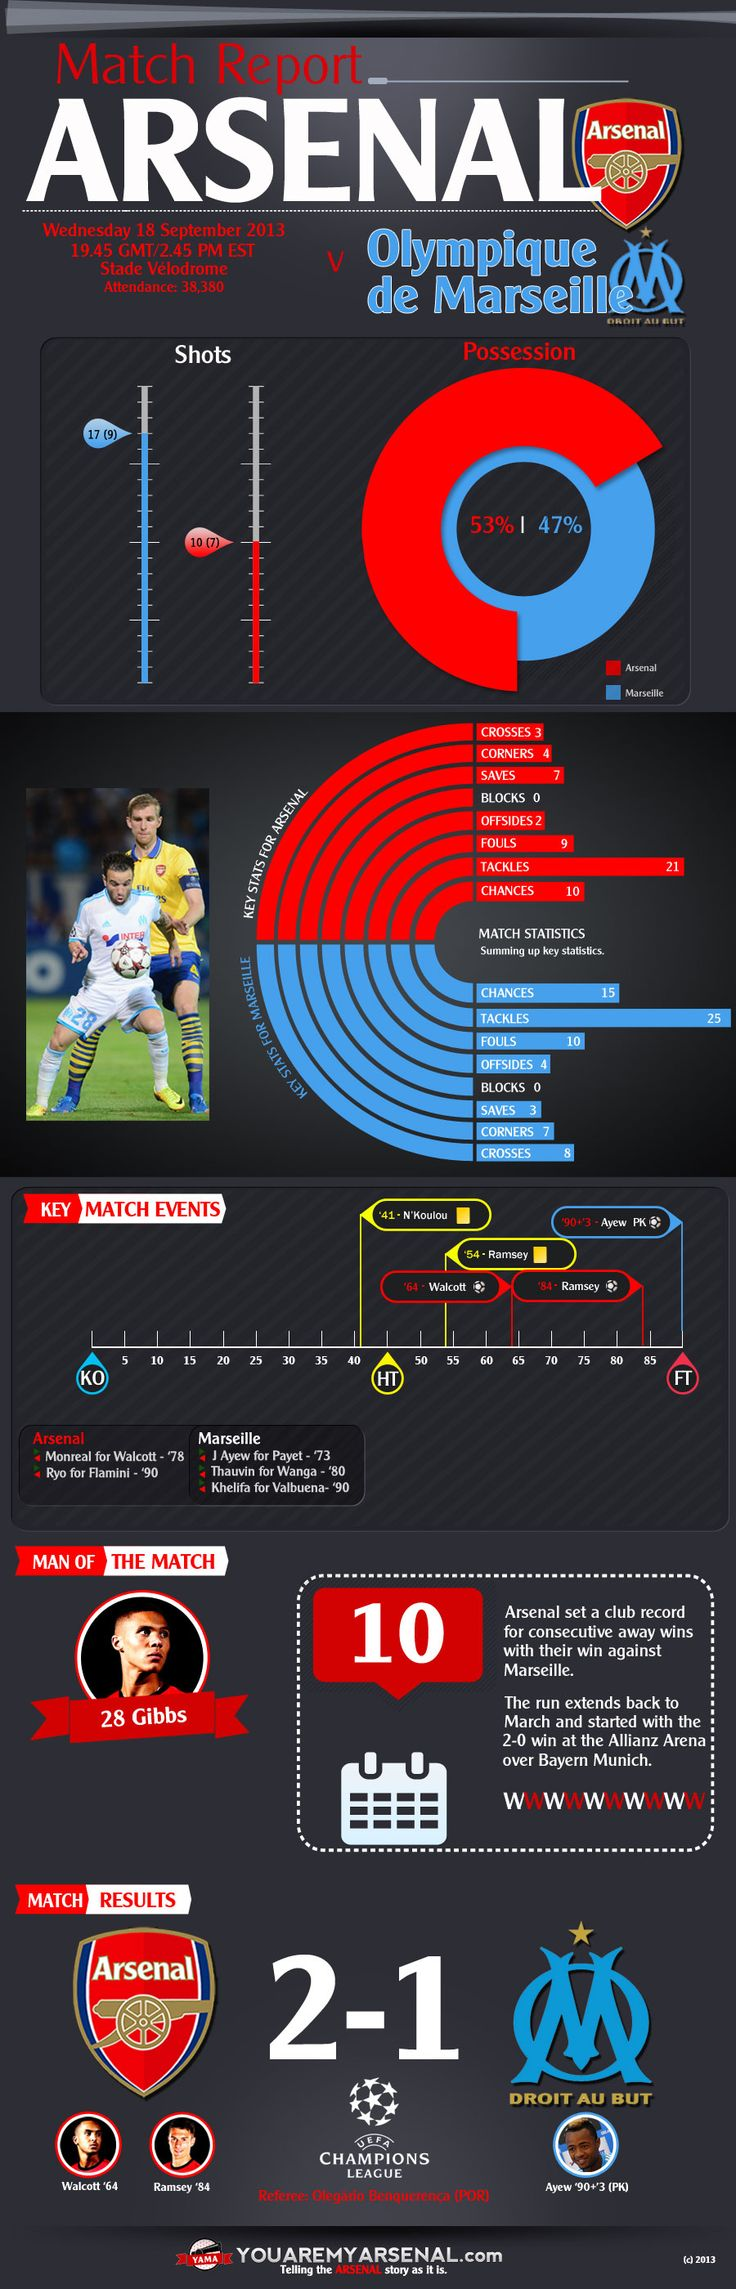 Match facts from Arsenal v Marseille